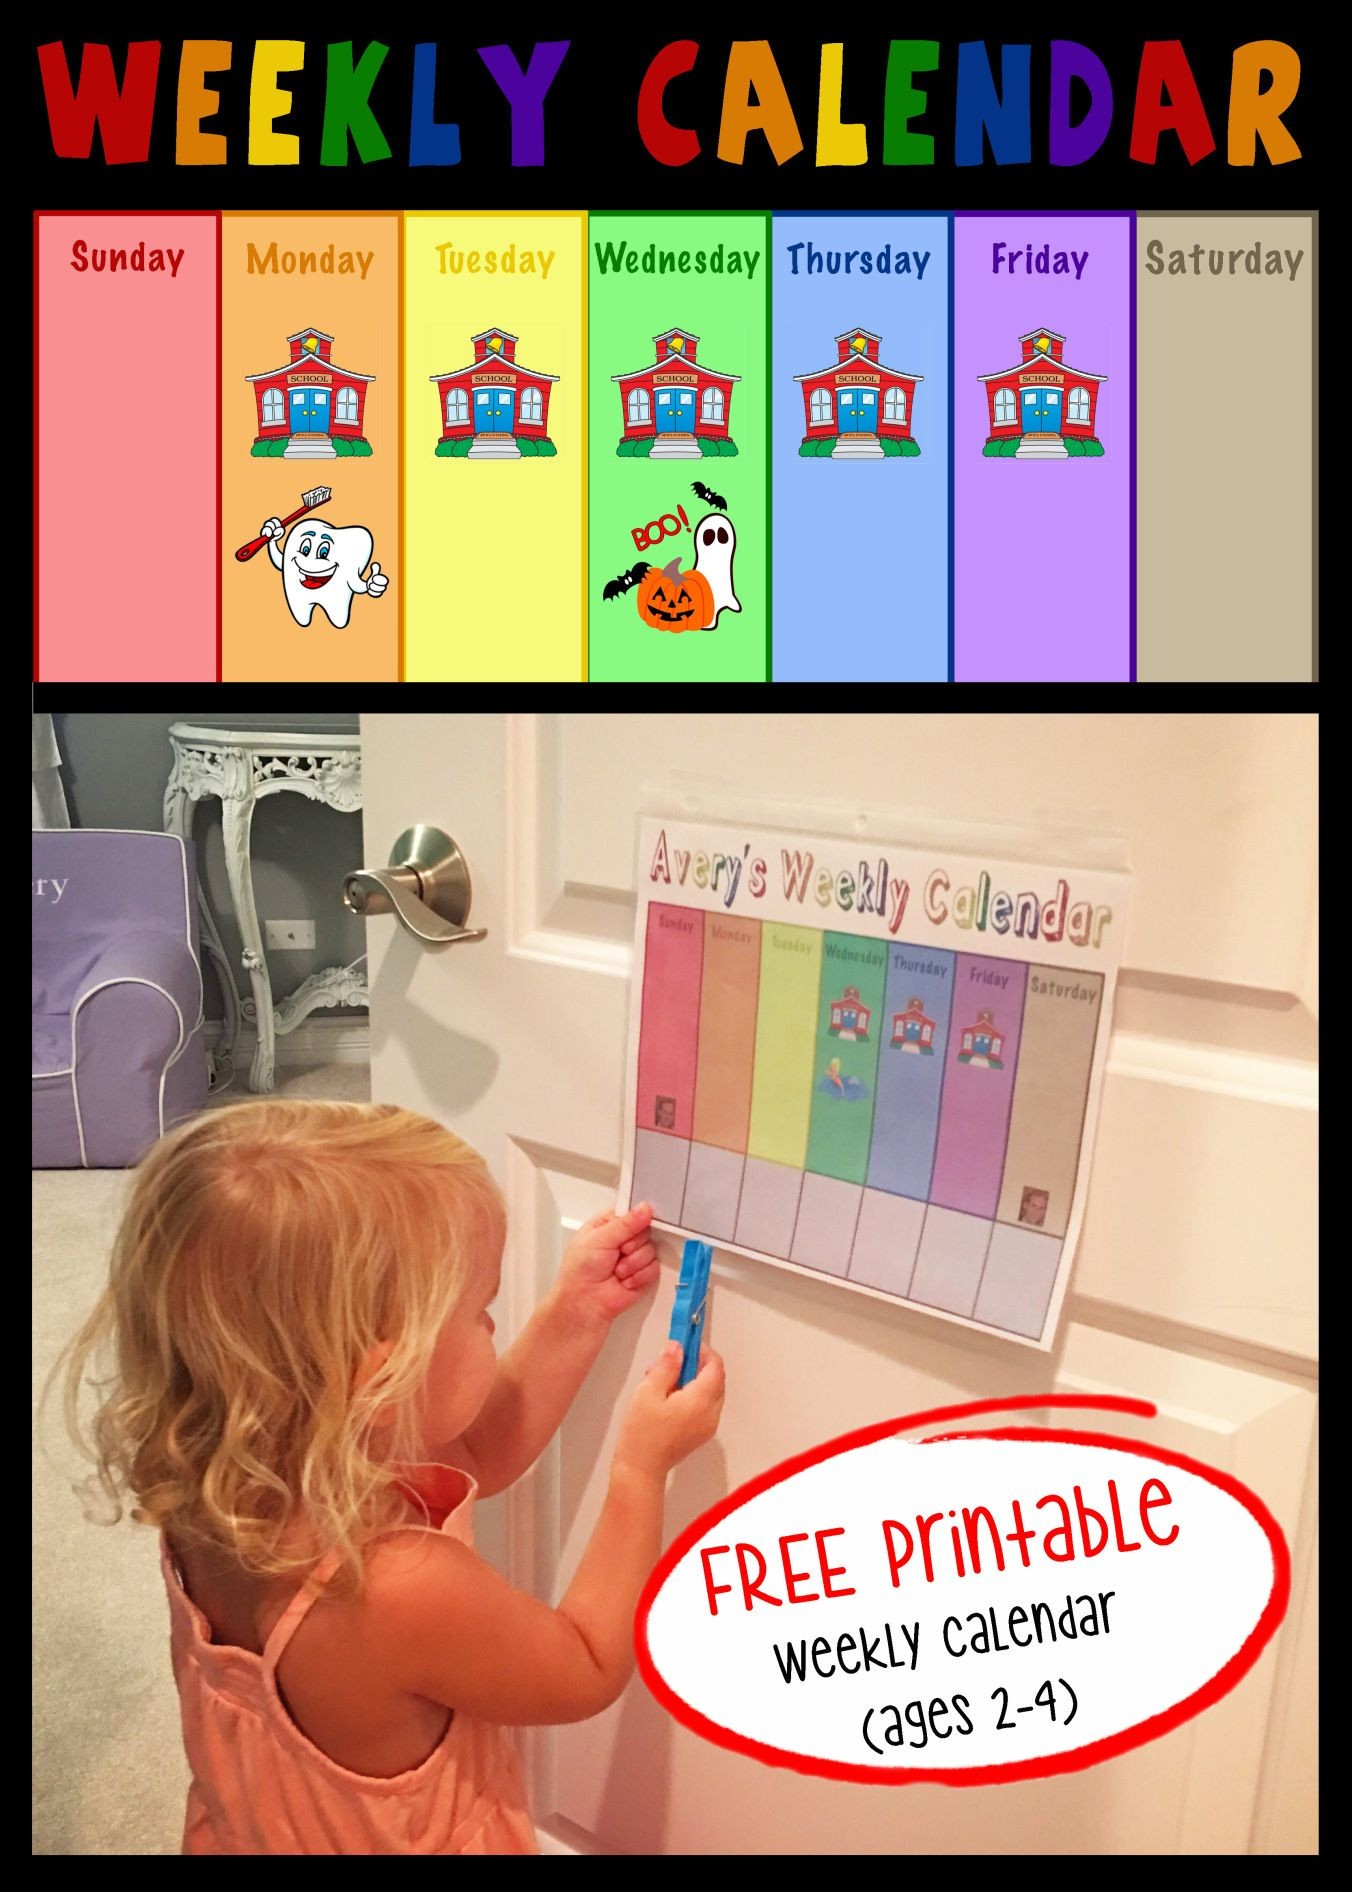 March Calendar Kids Más Recientes Free Printable toddler Weekly Calendar Projectsinparenting Of March Calendar Kids Más Populares Employee the Month Certificate Template Fresh Calendar Template